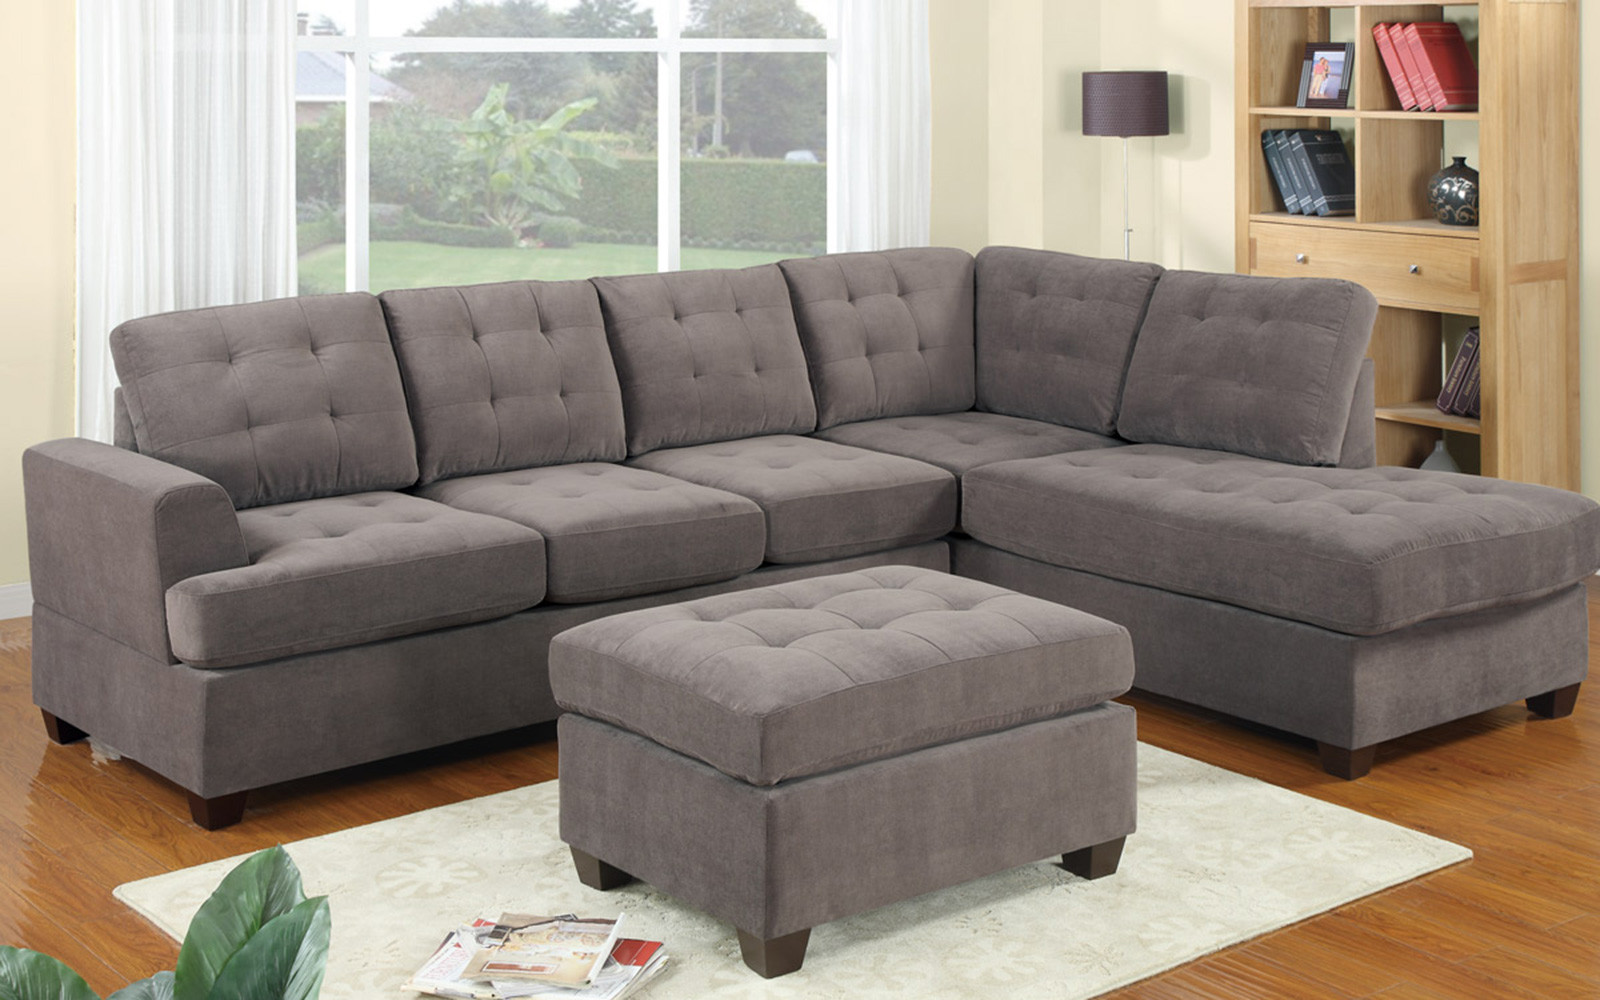 2 Piece Modern Reversible Grey Tufted Microfiber Sectional Sofa with Ottoman by